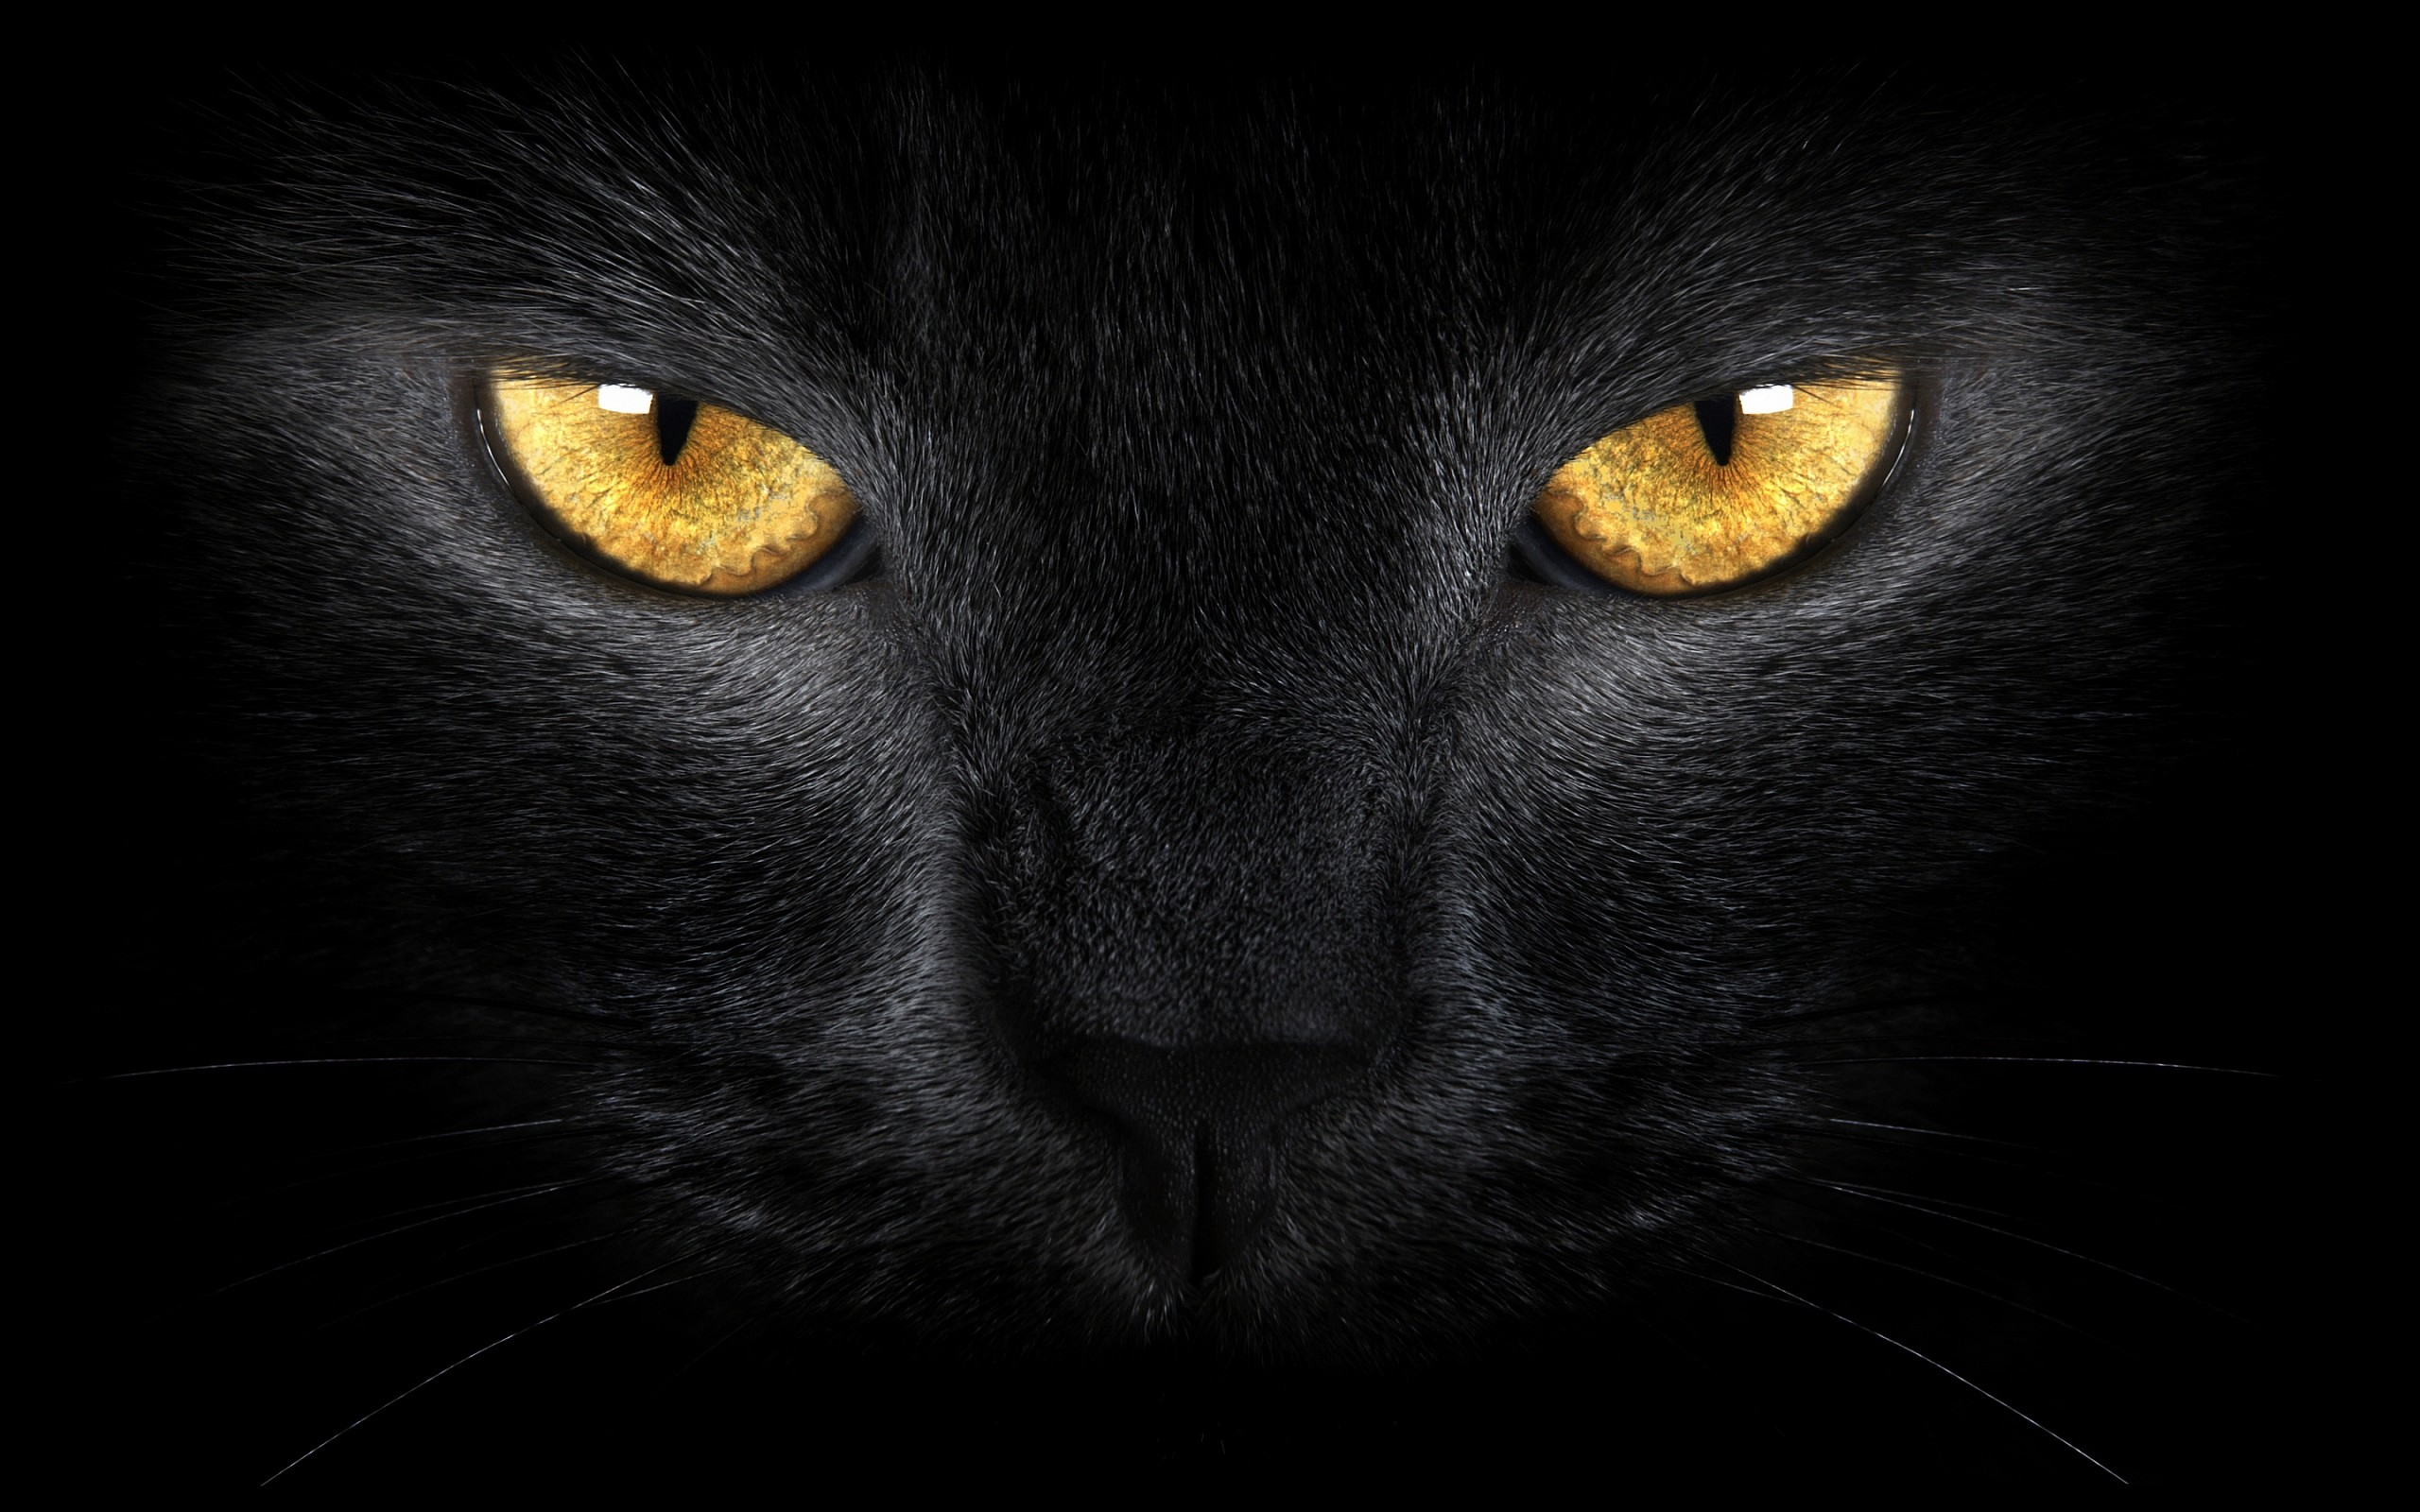 A Black Cat With Yellow And Ble Eyes